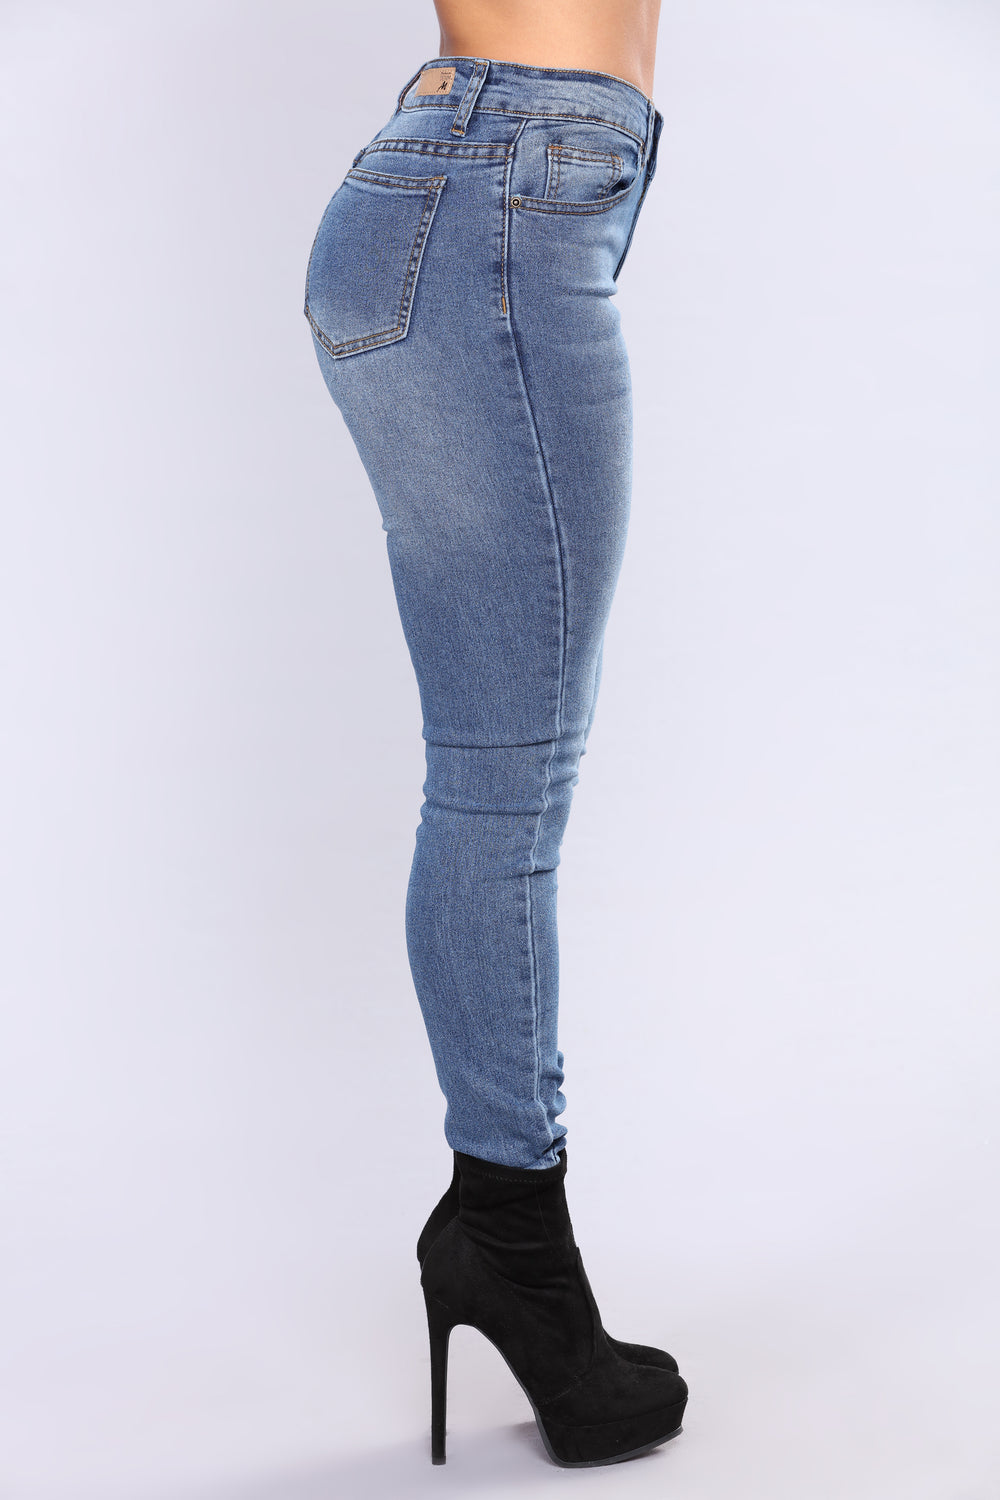 Back In The City Jeans - Medium Blue Wash